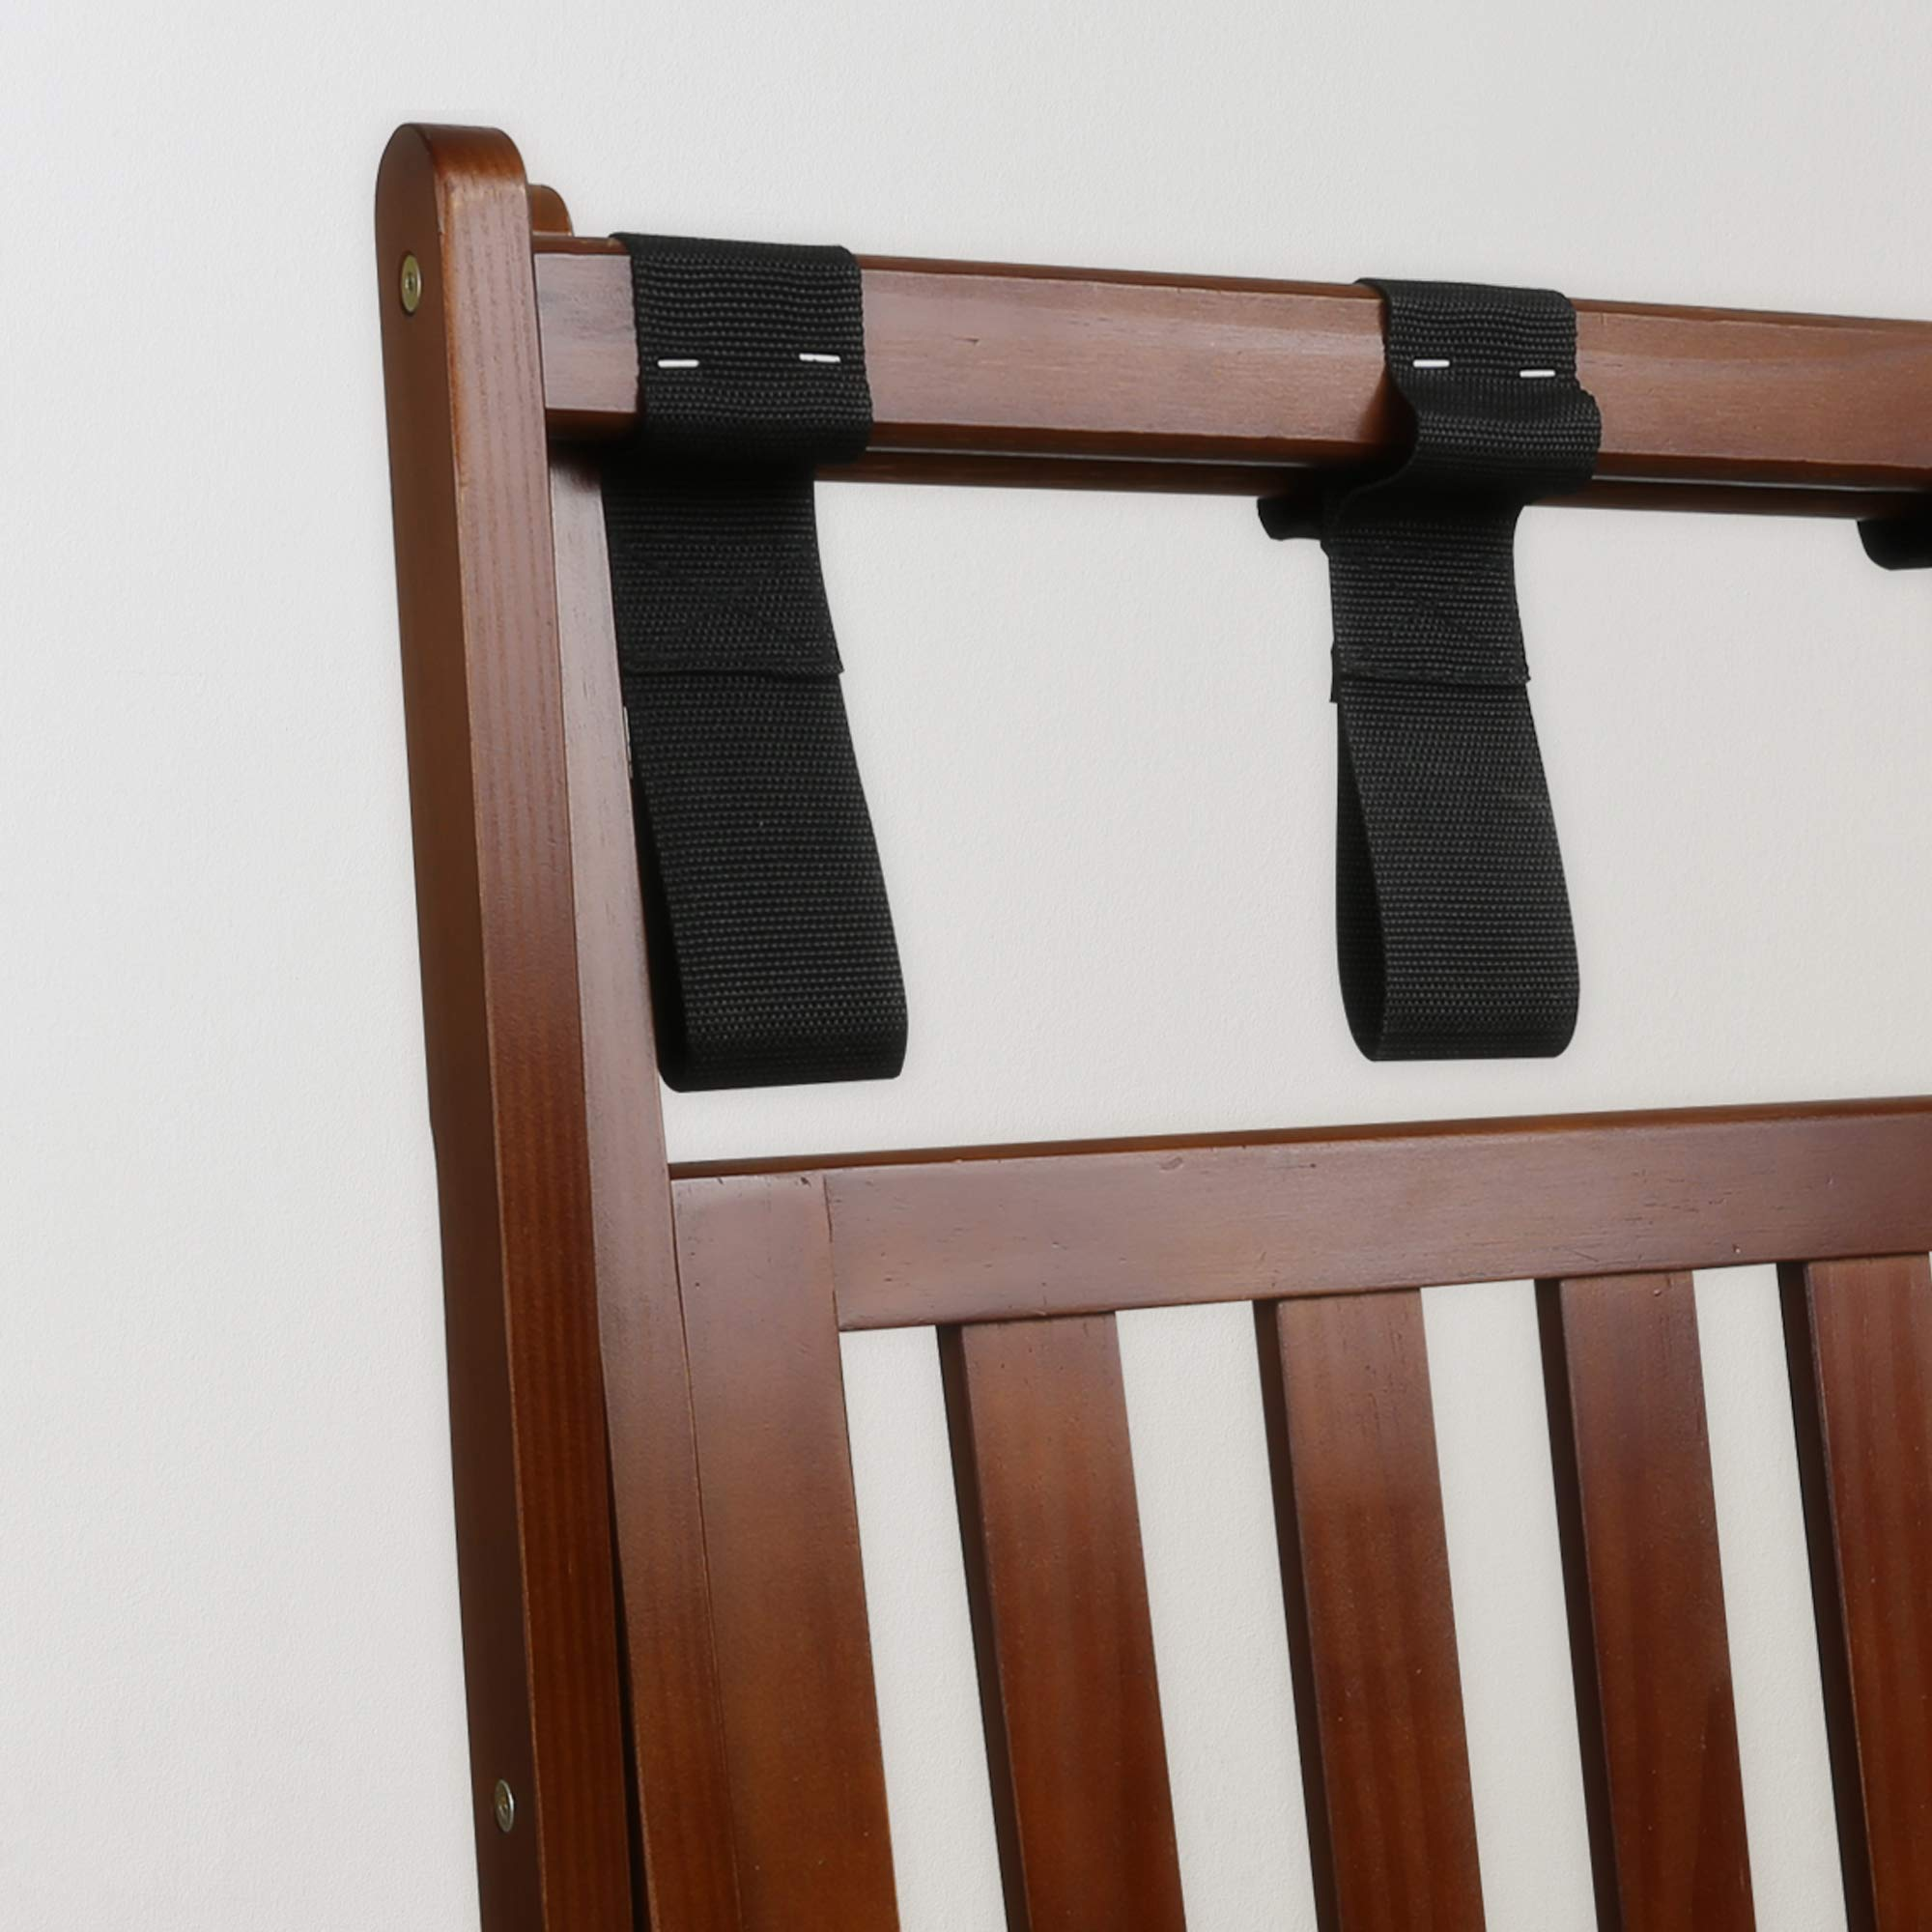 Casual Home Luggage Rack with Shelf by Casual Home (Image #10)